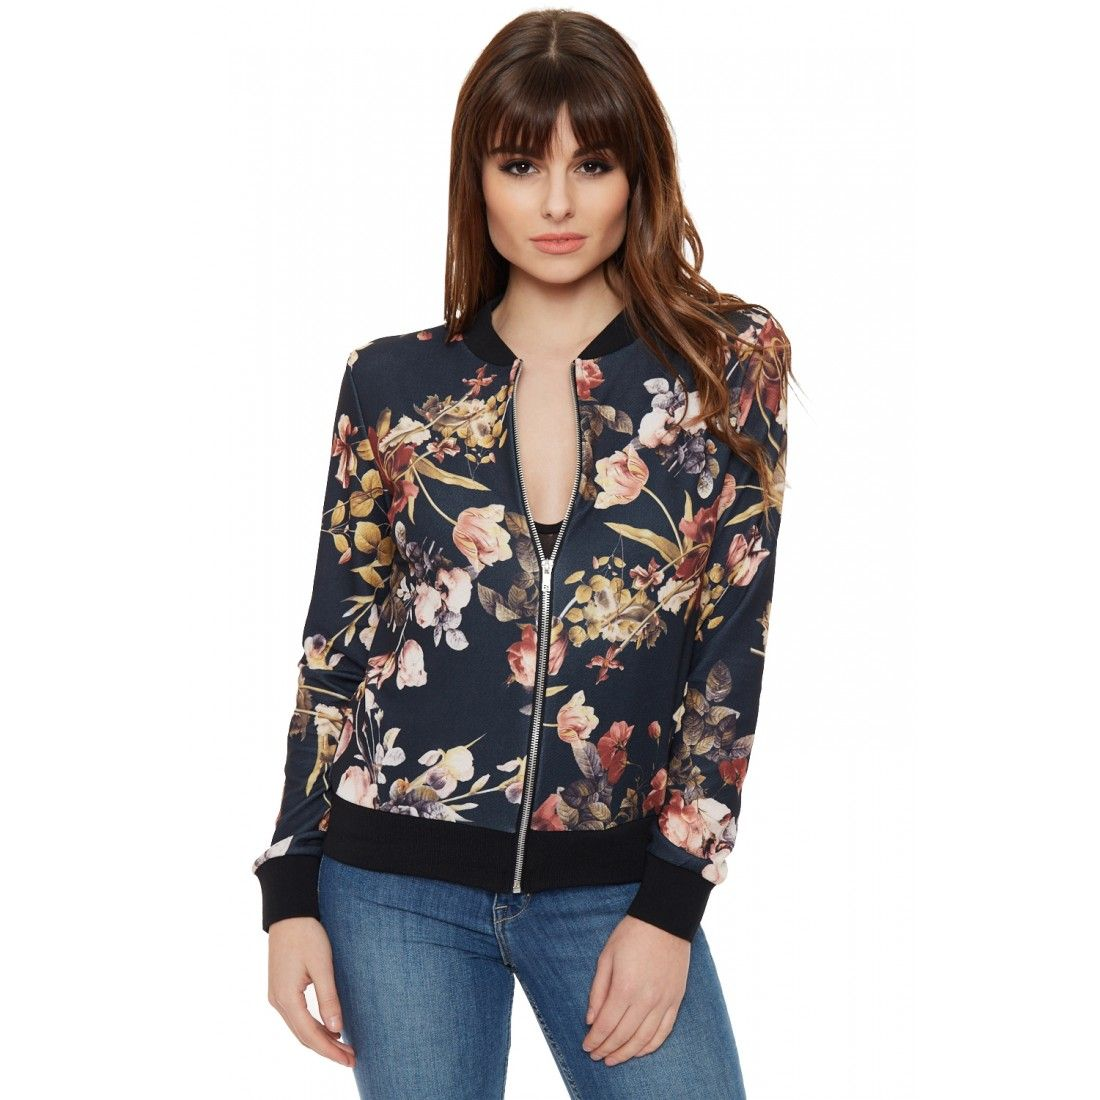 Xenia Floral Bomber Jacket - Xenia Floral Bomber Jacket Floral Bomber--碎花轰炸机 Pinterest